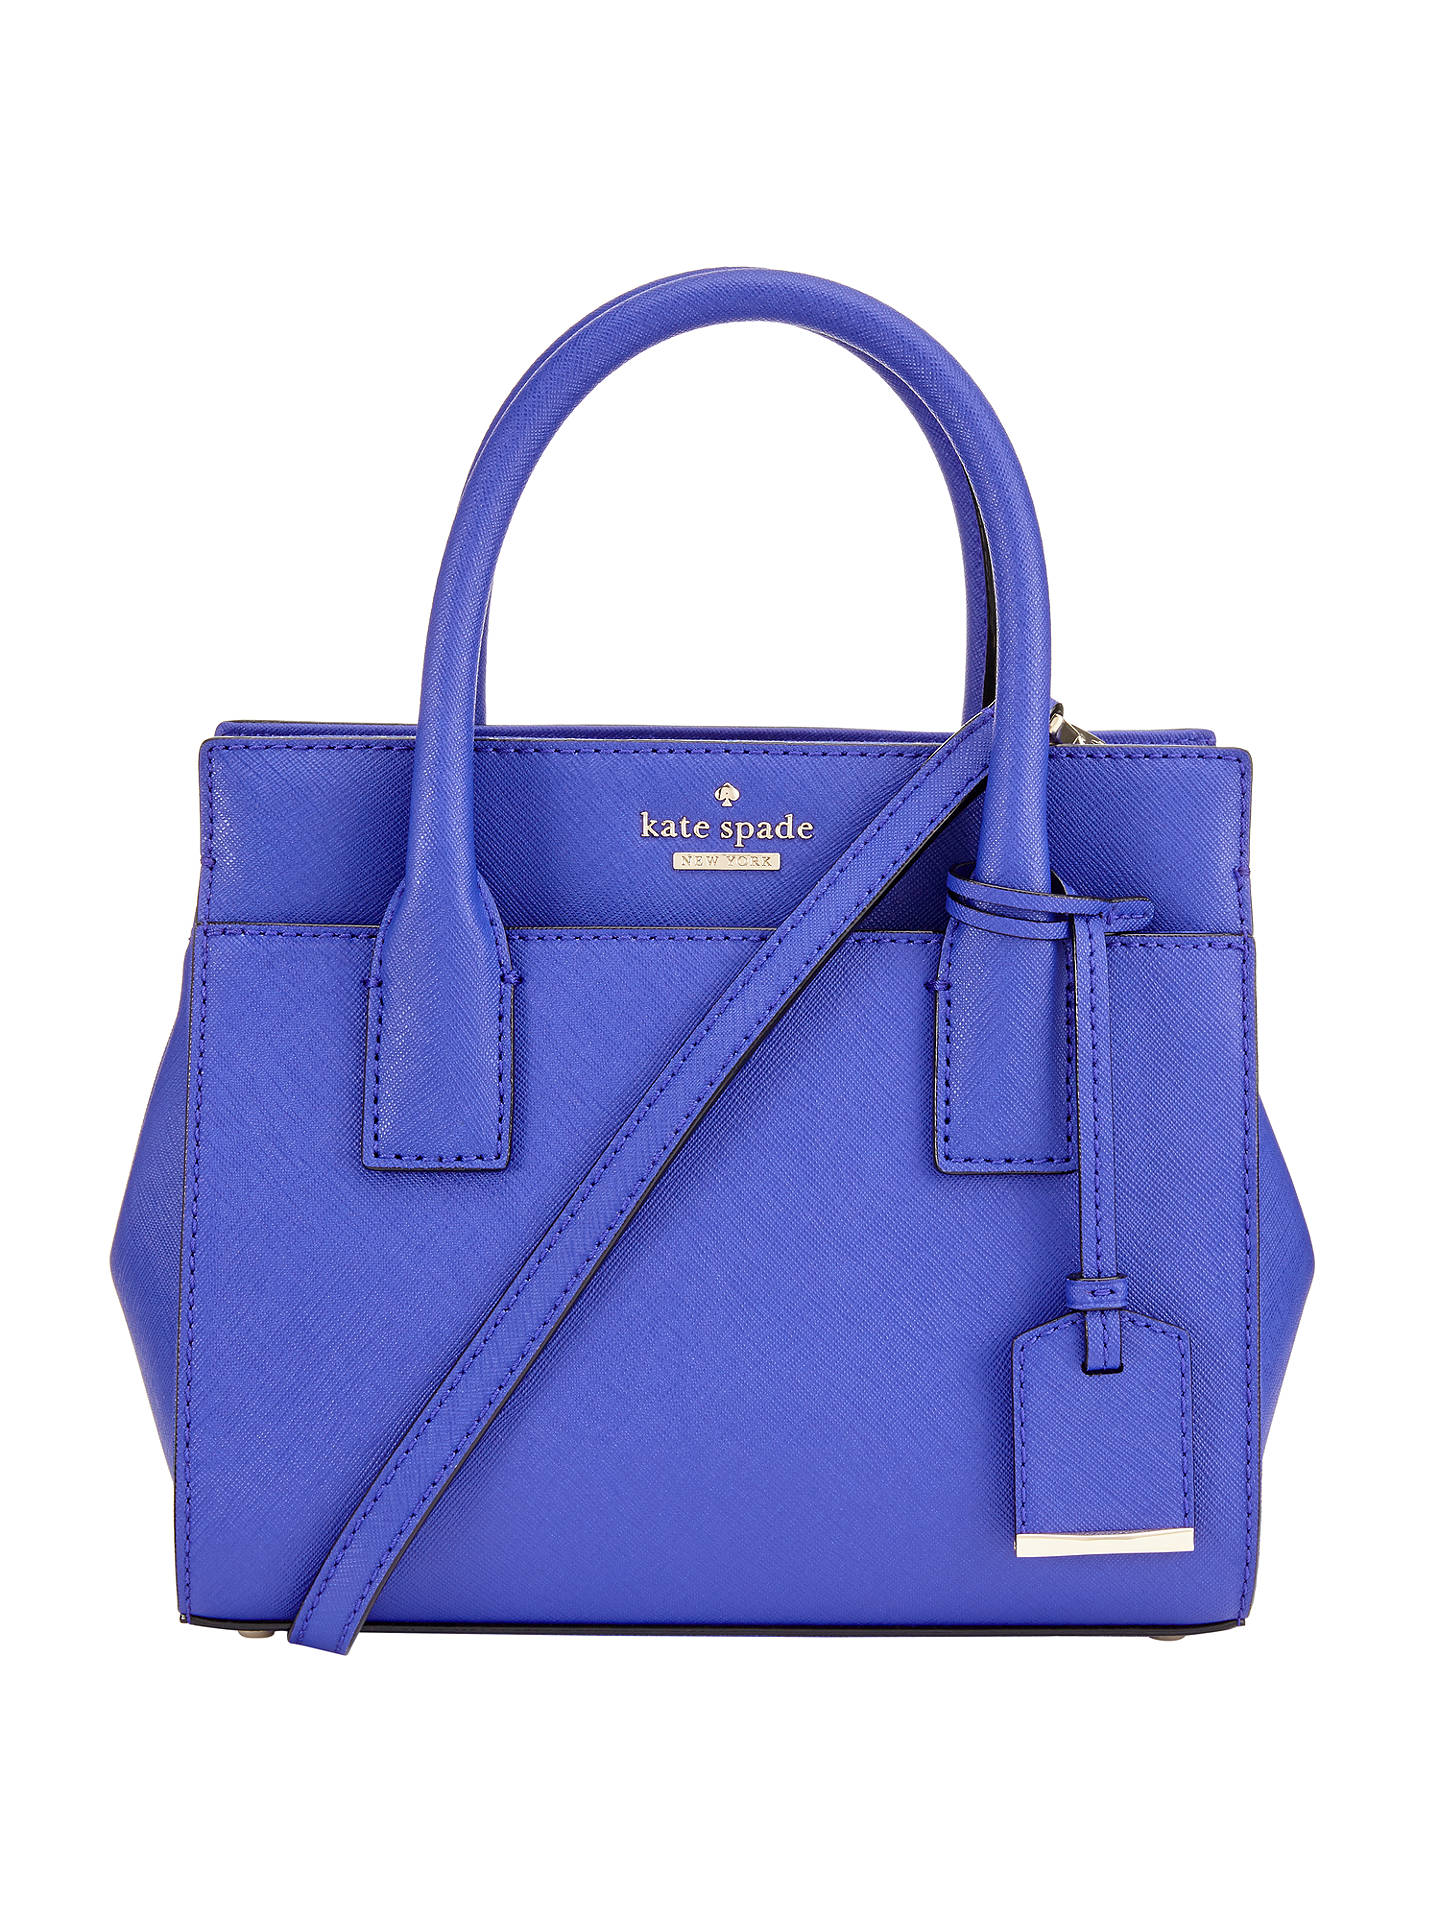 Buykate spade new york Cameron Street Mini Candace Leather Satchel, Nightlife Blue Online at johnlewis.com